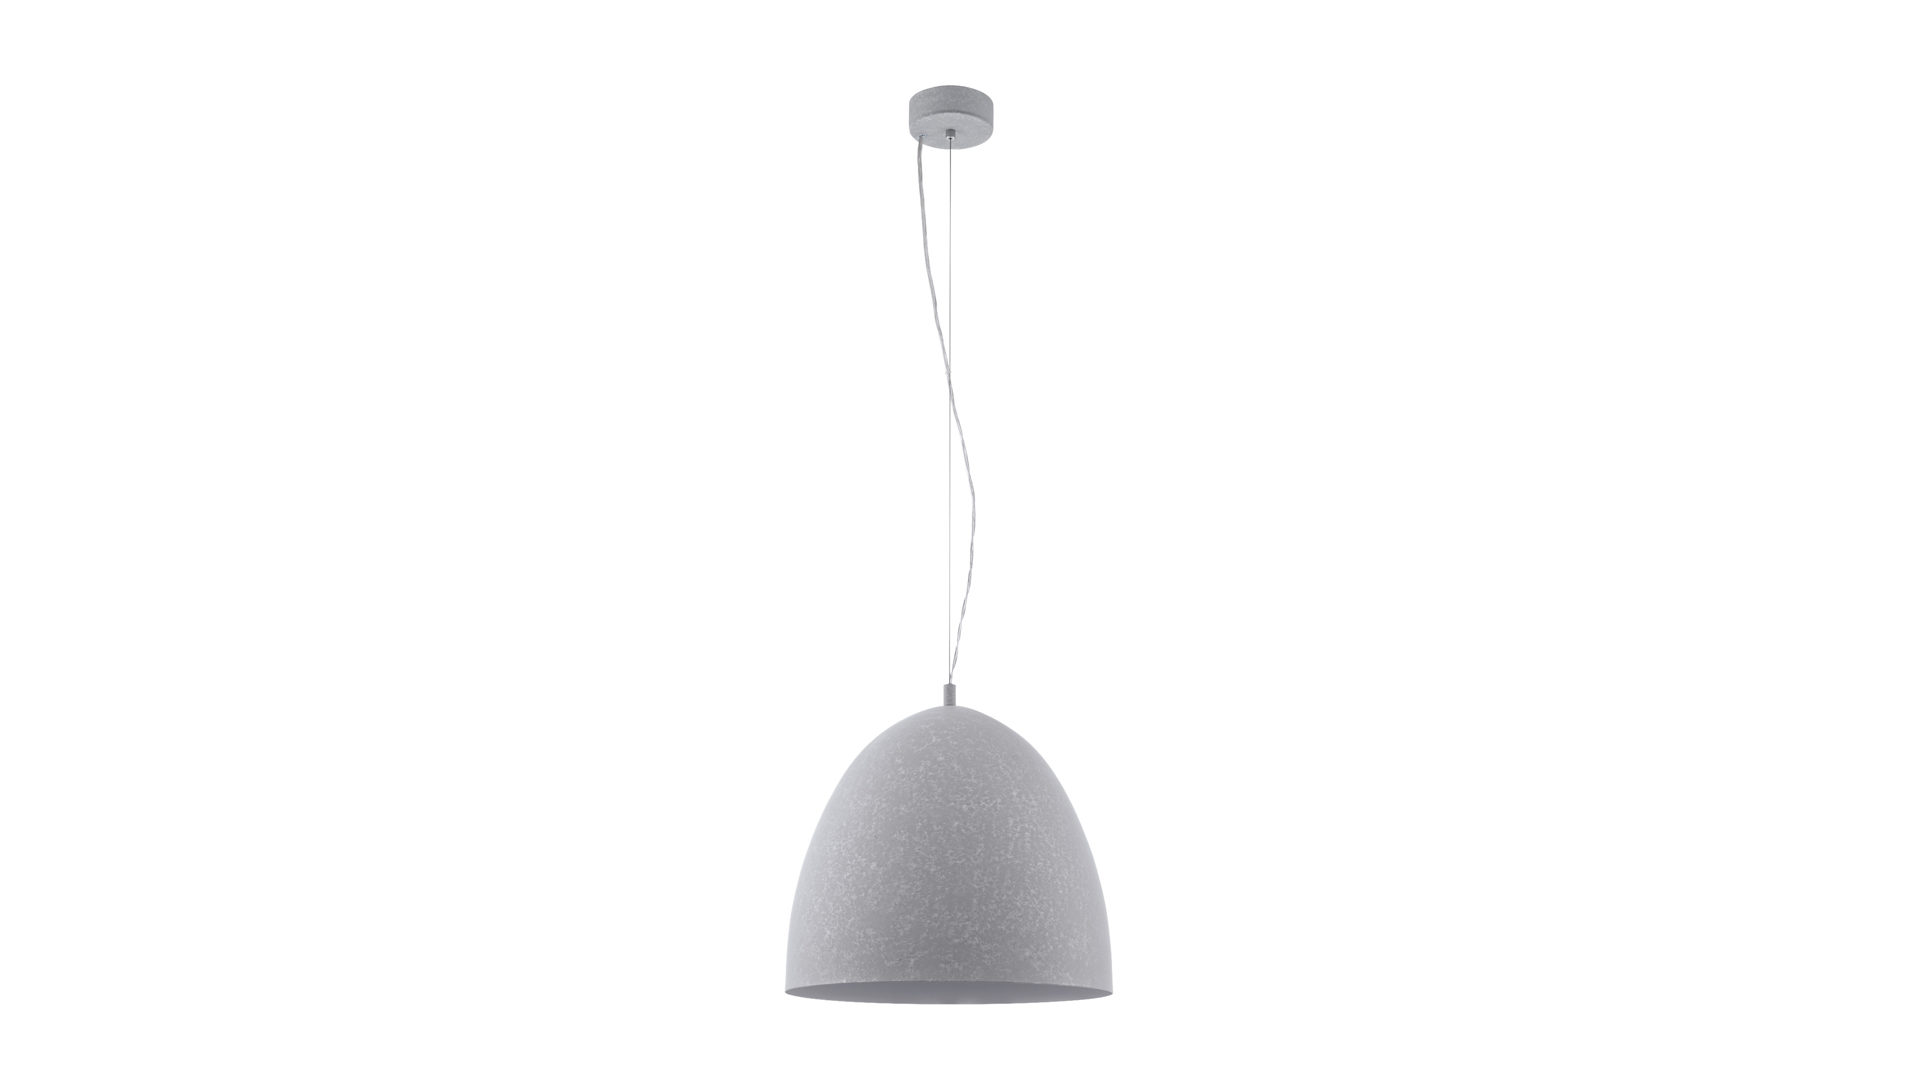 Esszimmer Lampen Pendelleuchten - The Cool Designs